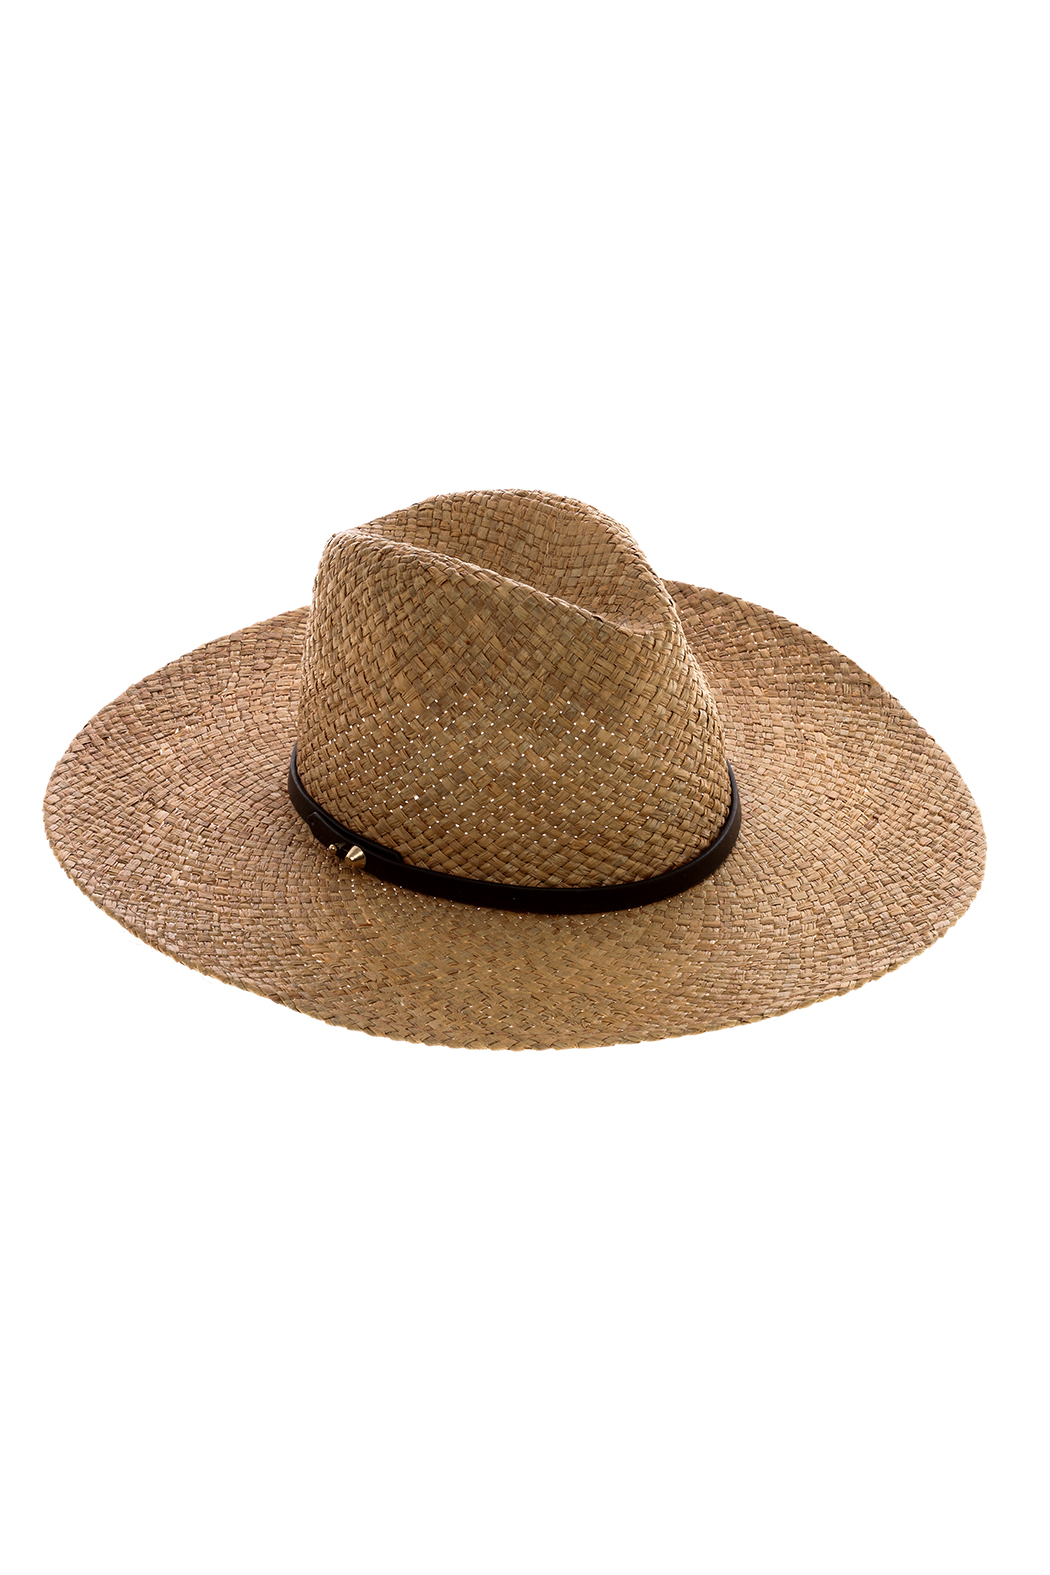 Ace of Something Brown Straw Hat - Main Image